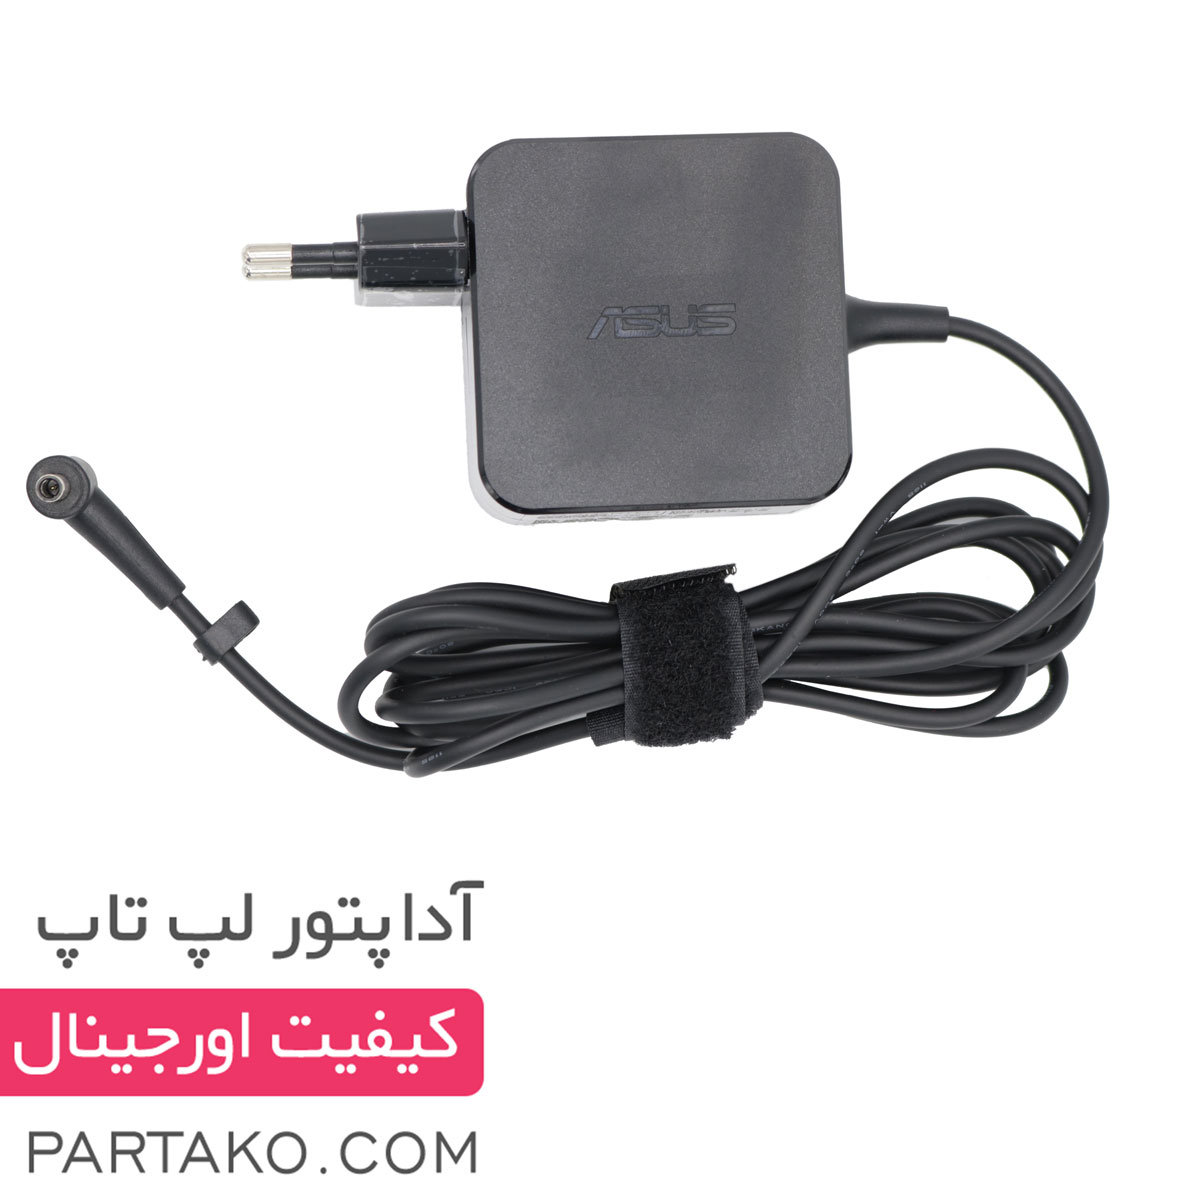 image شارژر لپ تاپ ایسوس 19ولت 2.37 آمپر 45w - ADAPTER CHARGER ASUS